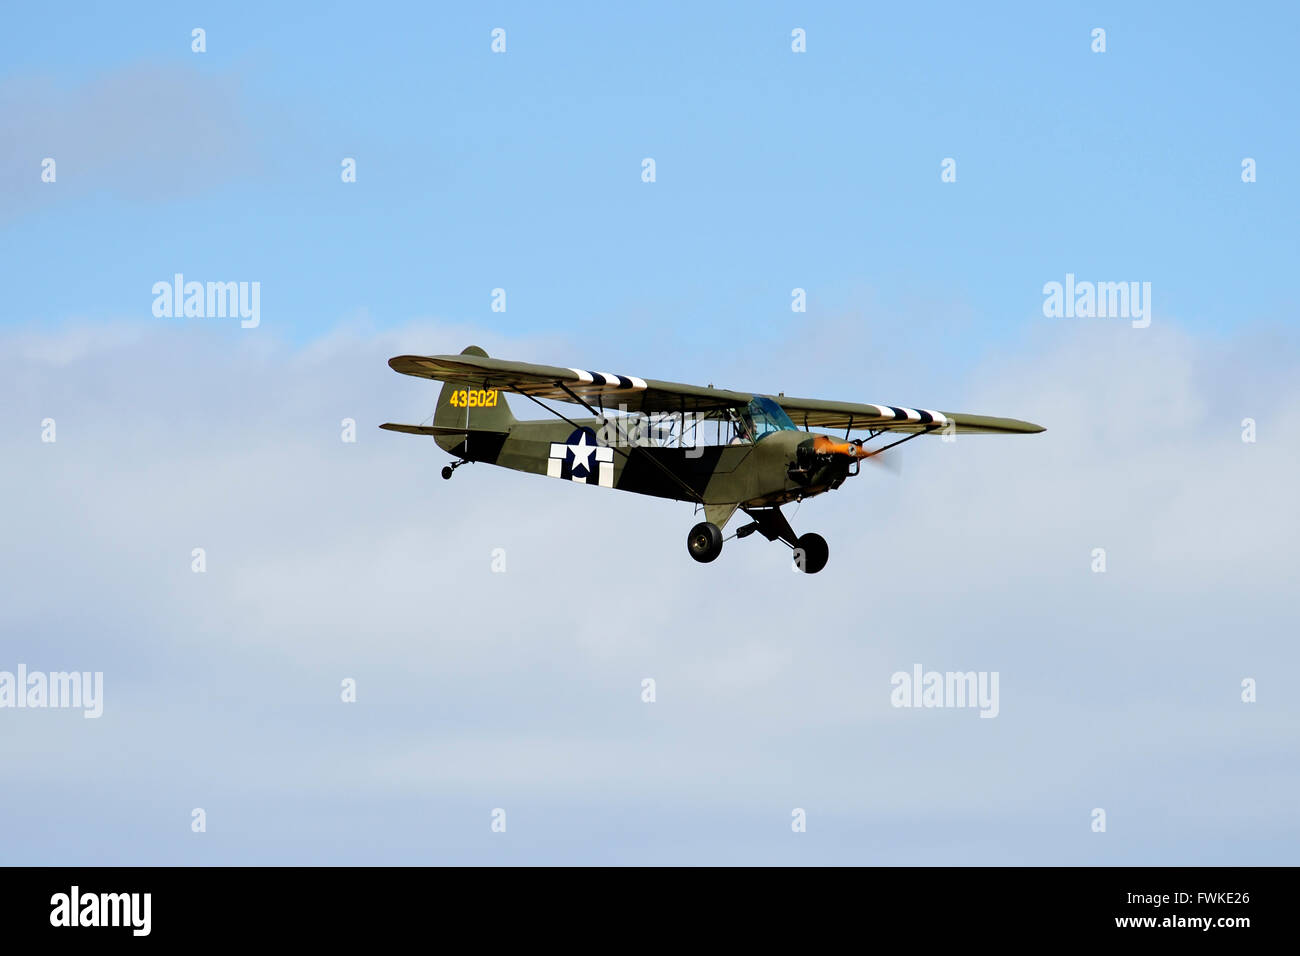 Piper J-3 Cub during its display at East Fortune Airshow 2011 - Stock Image